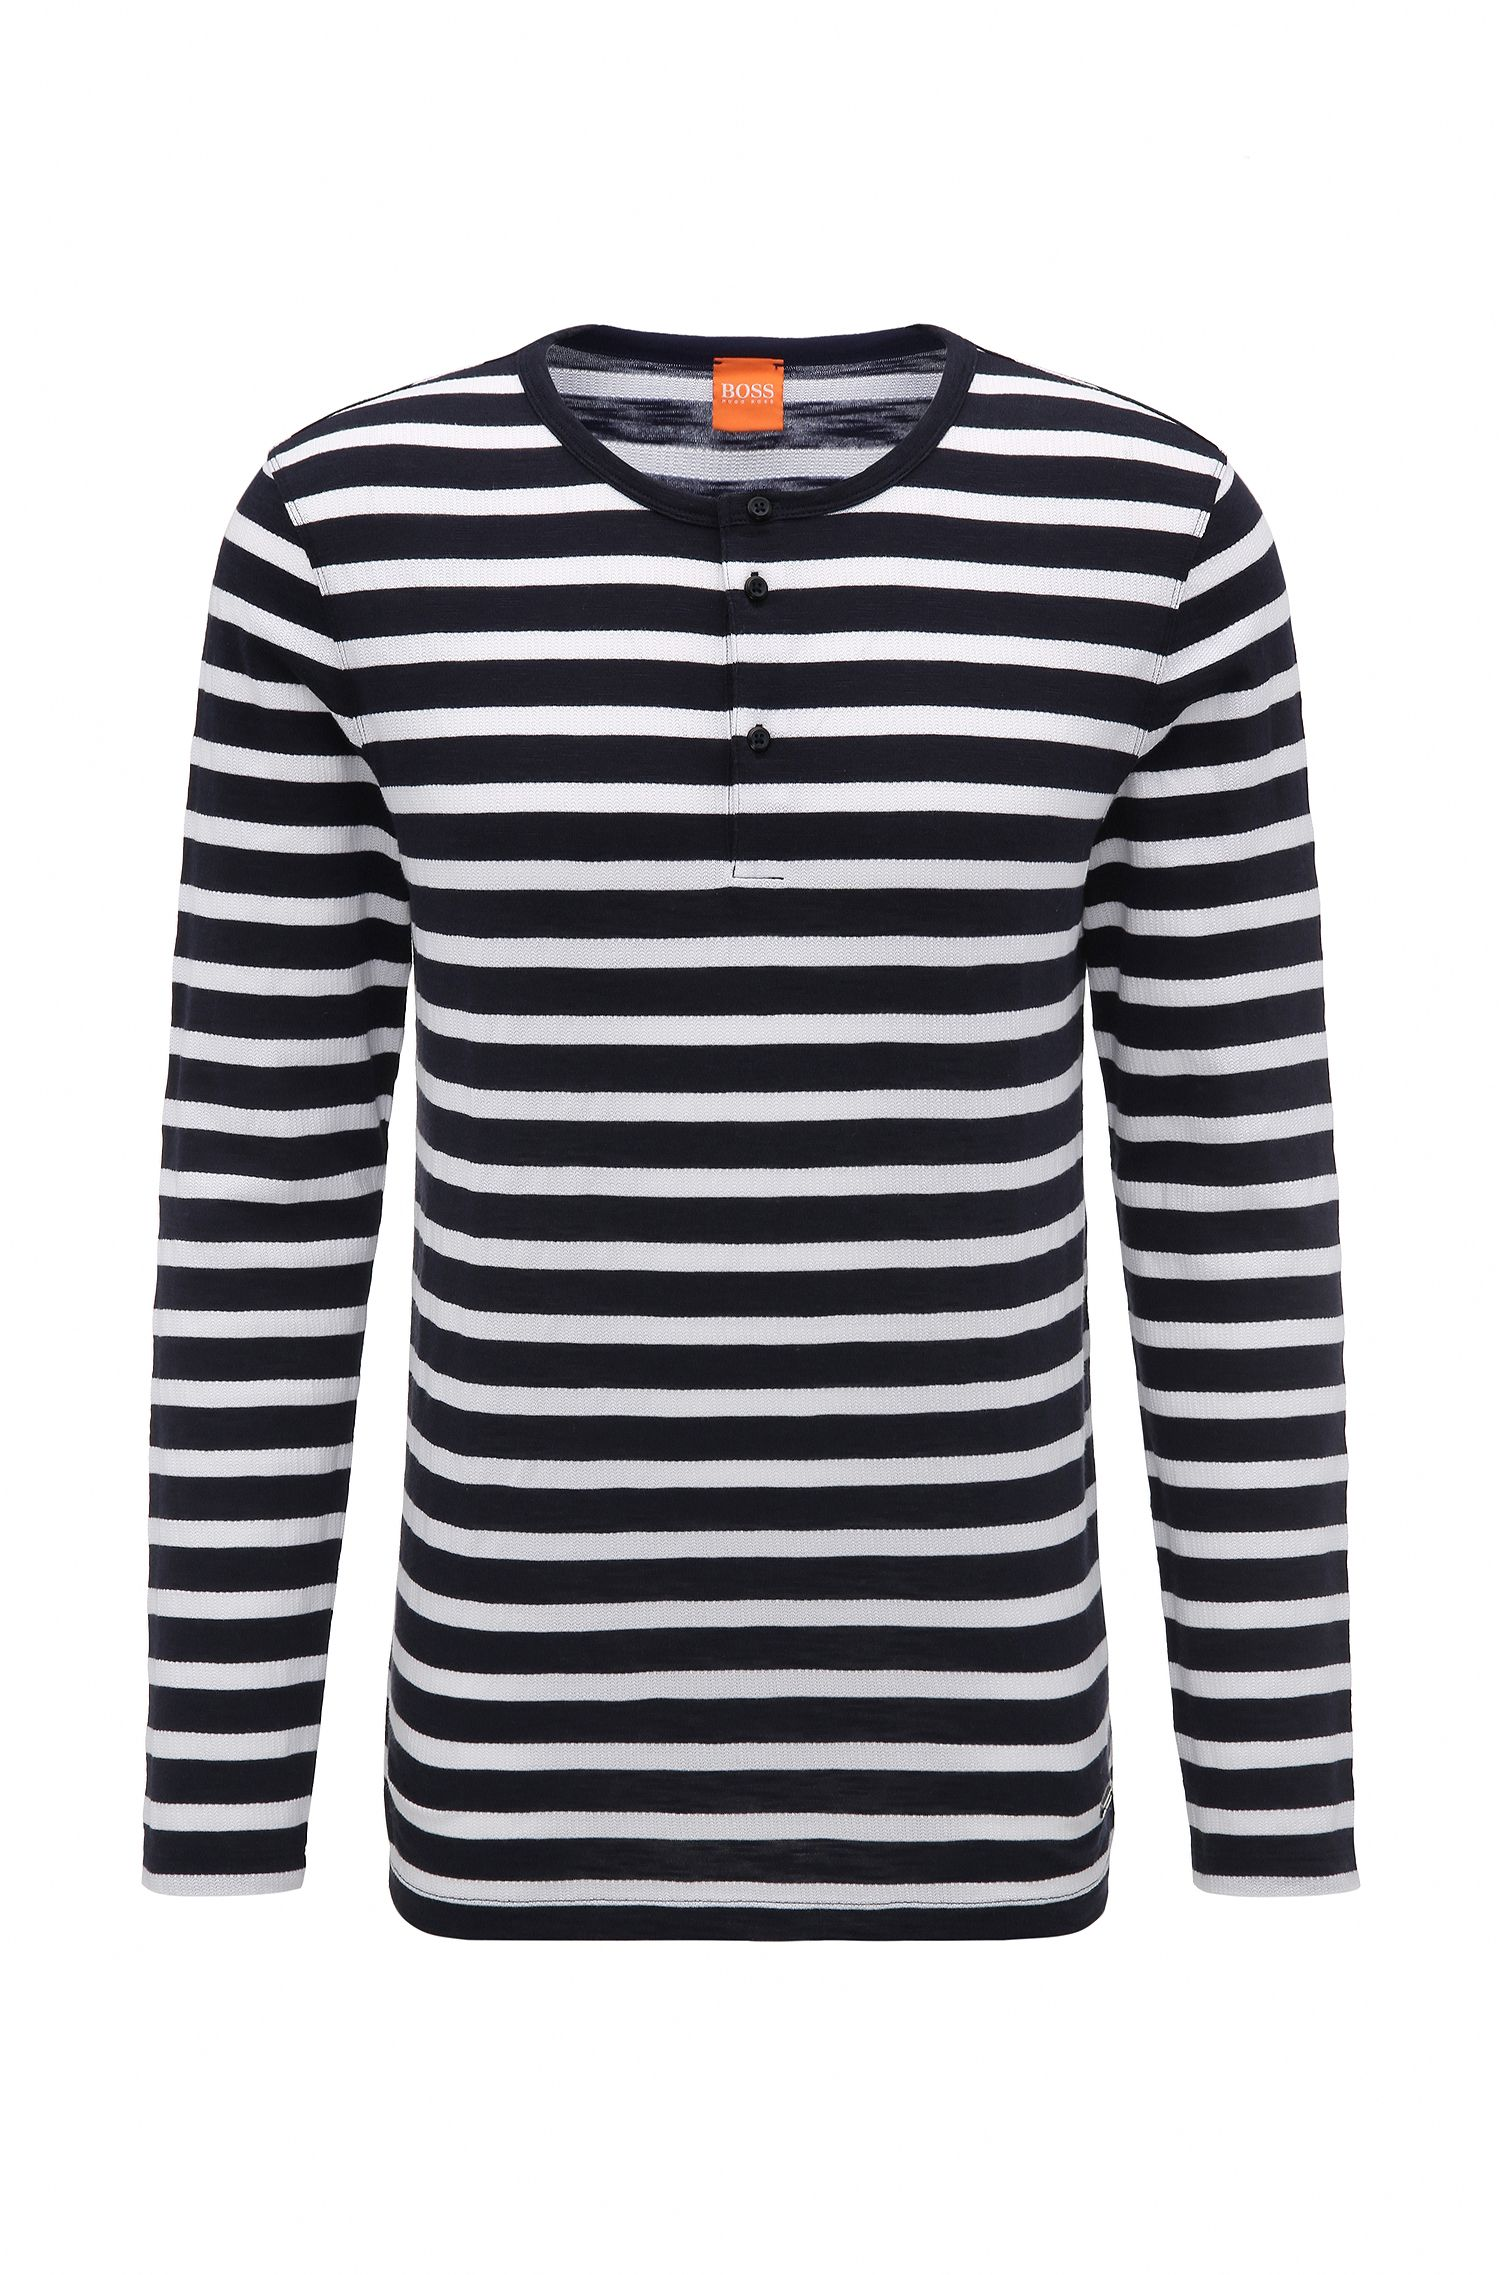 Striped Knit Henley Shirt | Translation